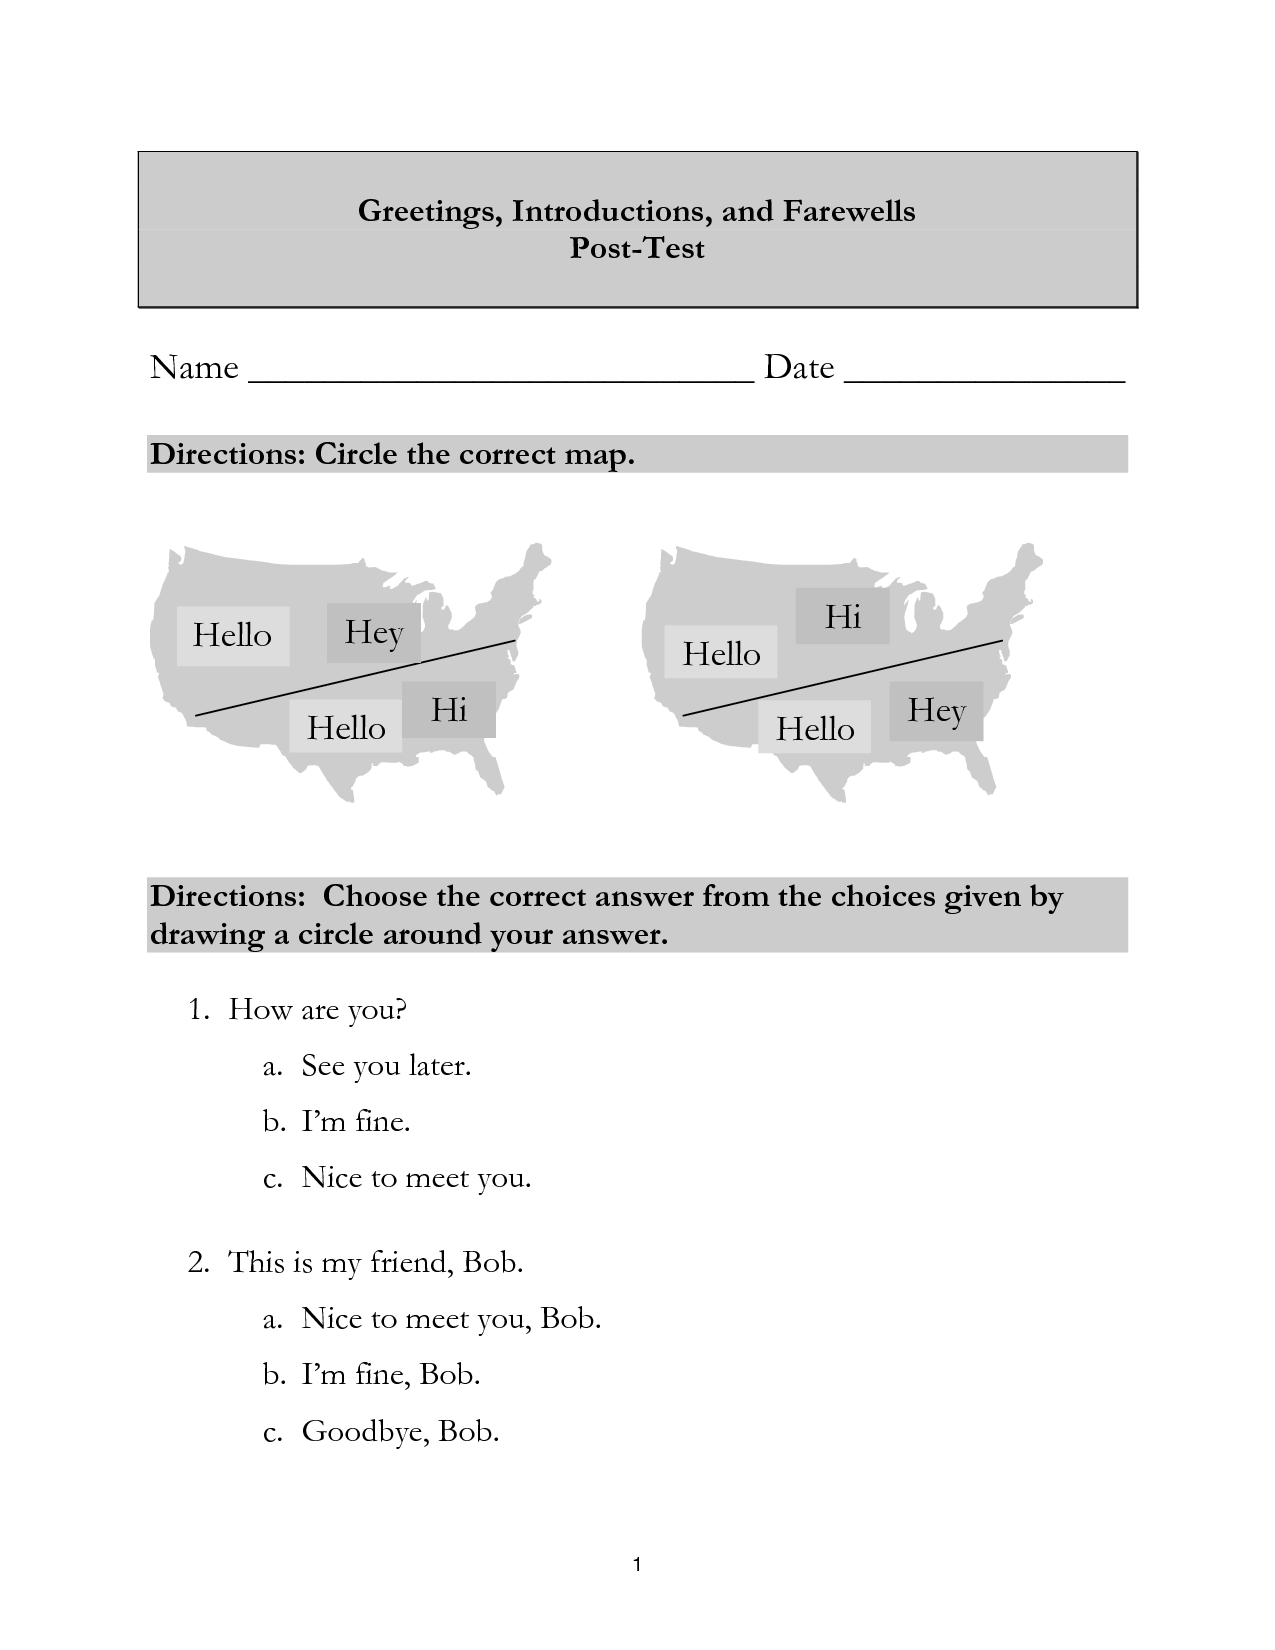 11 Best Images Of French Greetings Worksheet